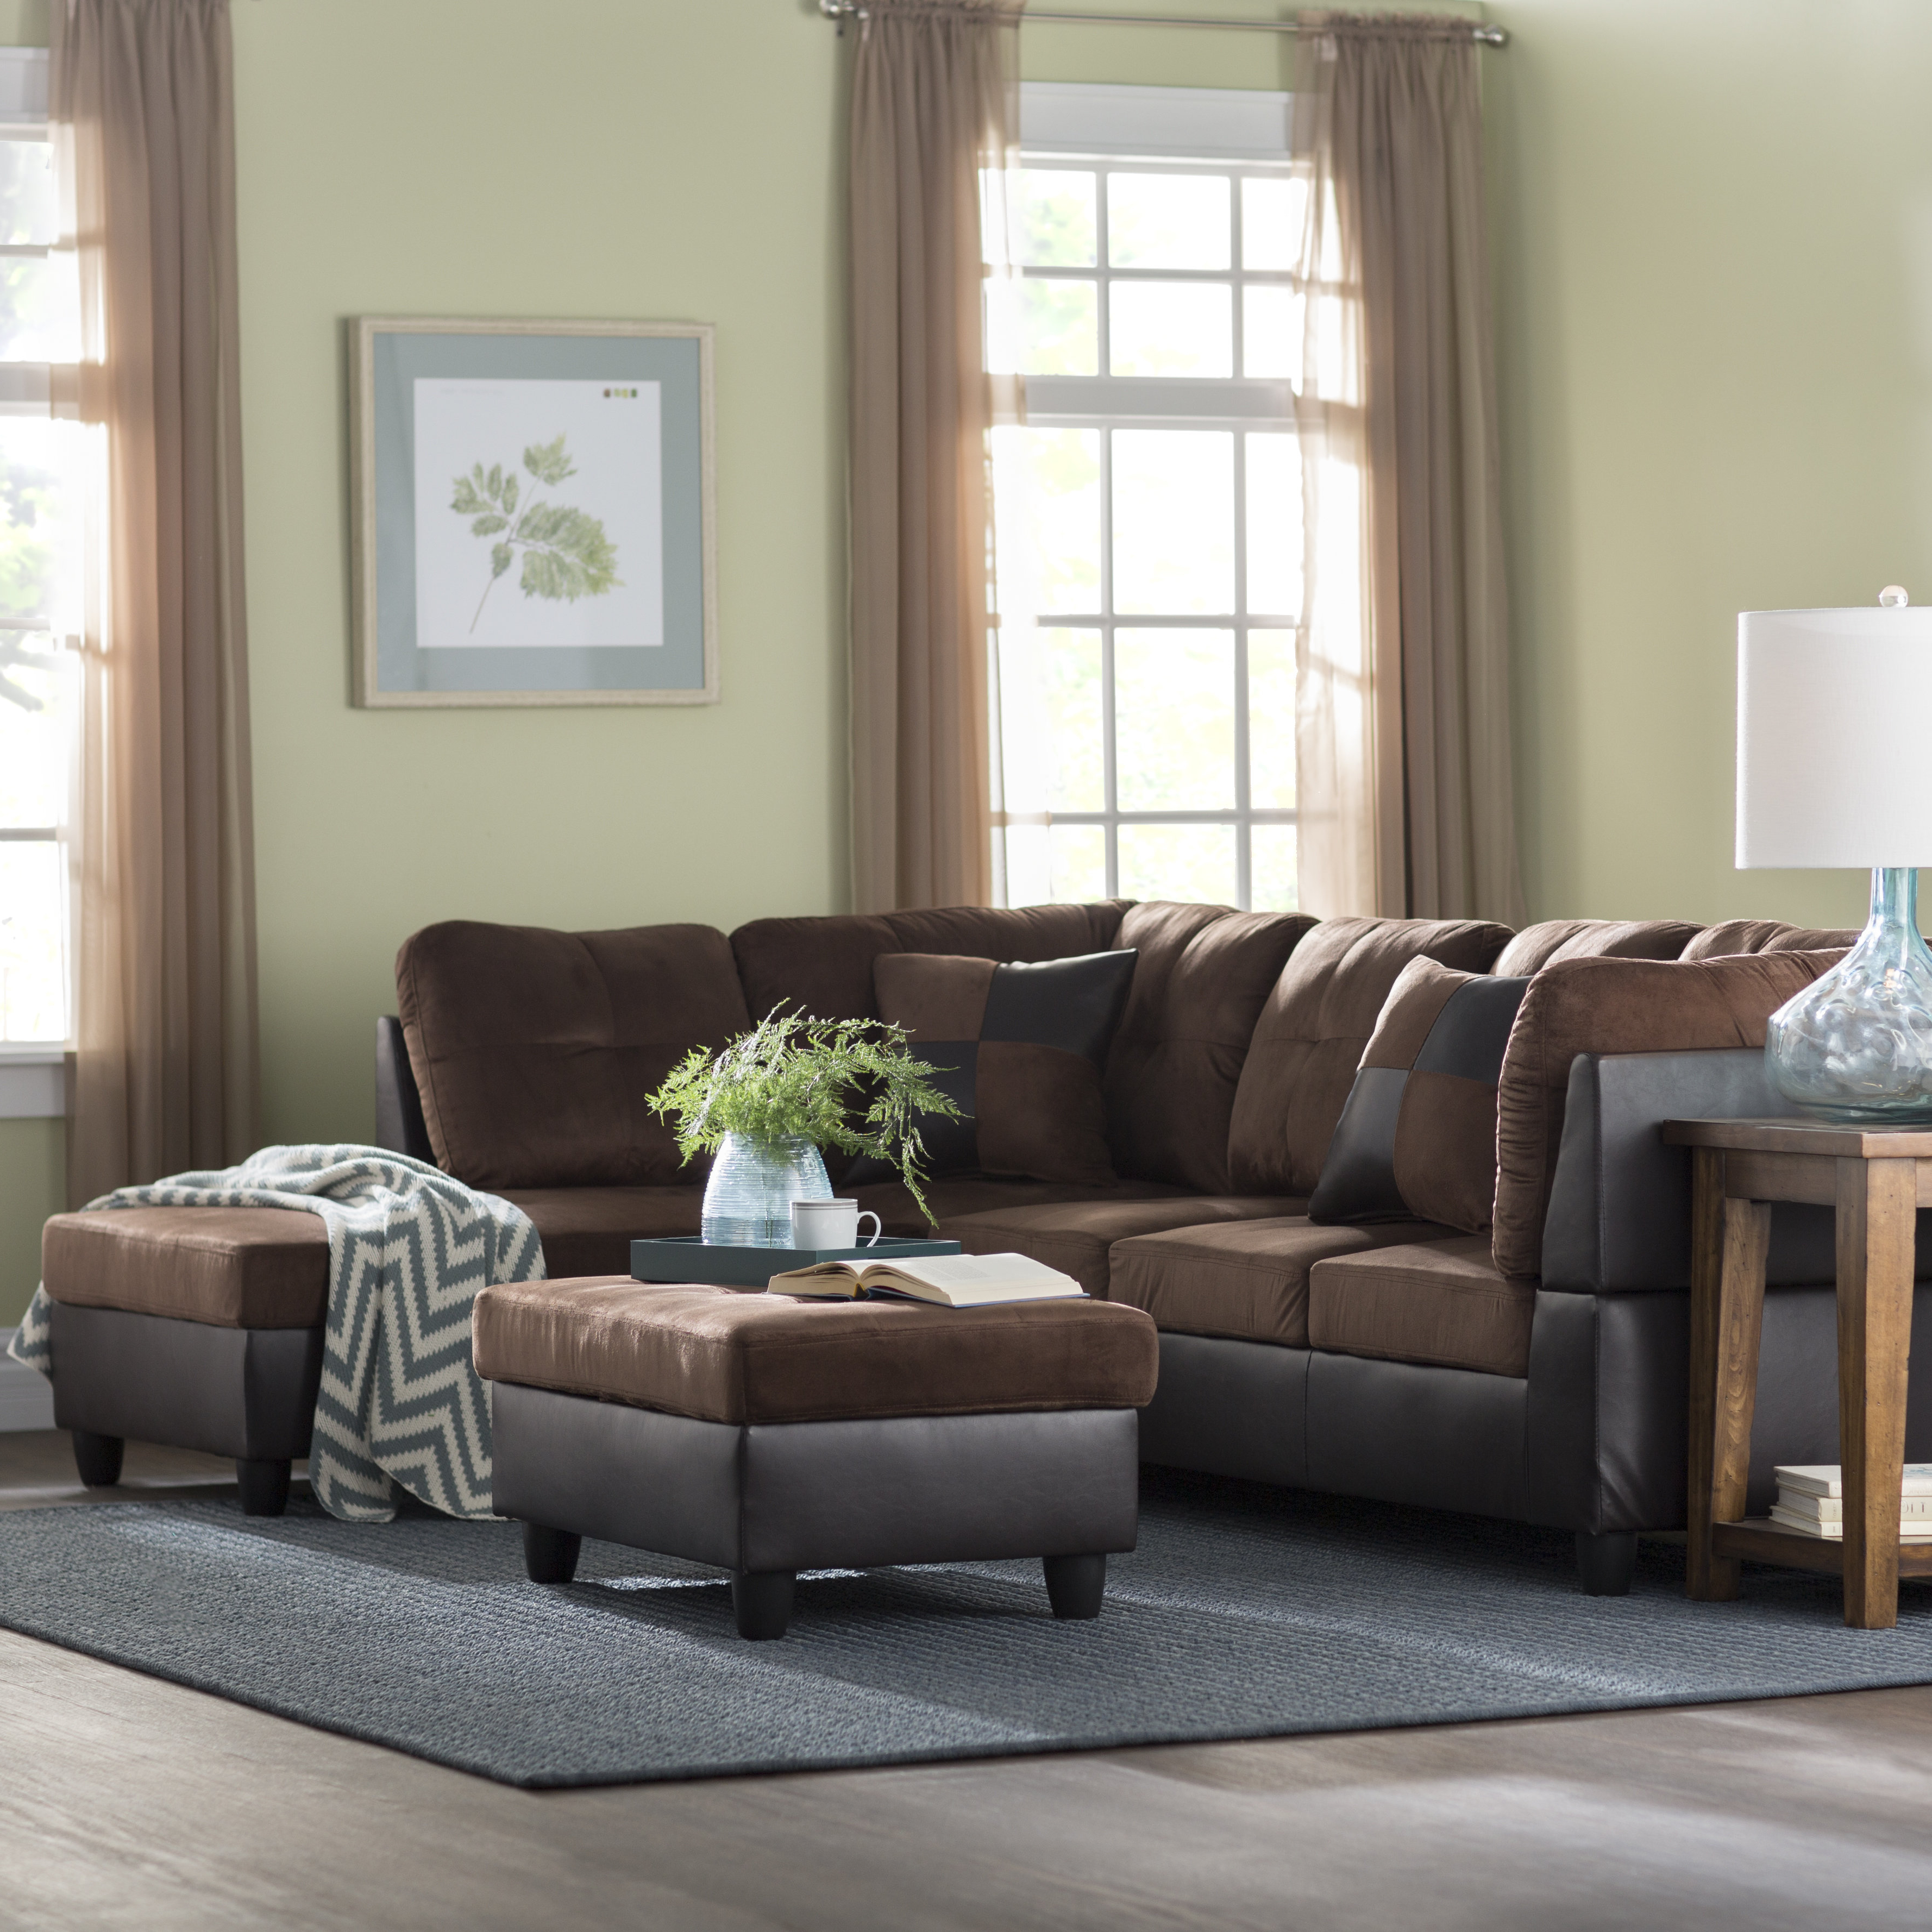 Wayfair Within Current Blaine 3 Piece Sectionals (View 8 of 20)